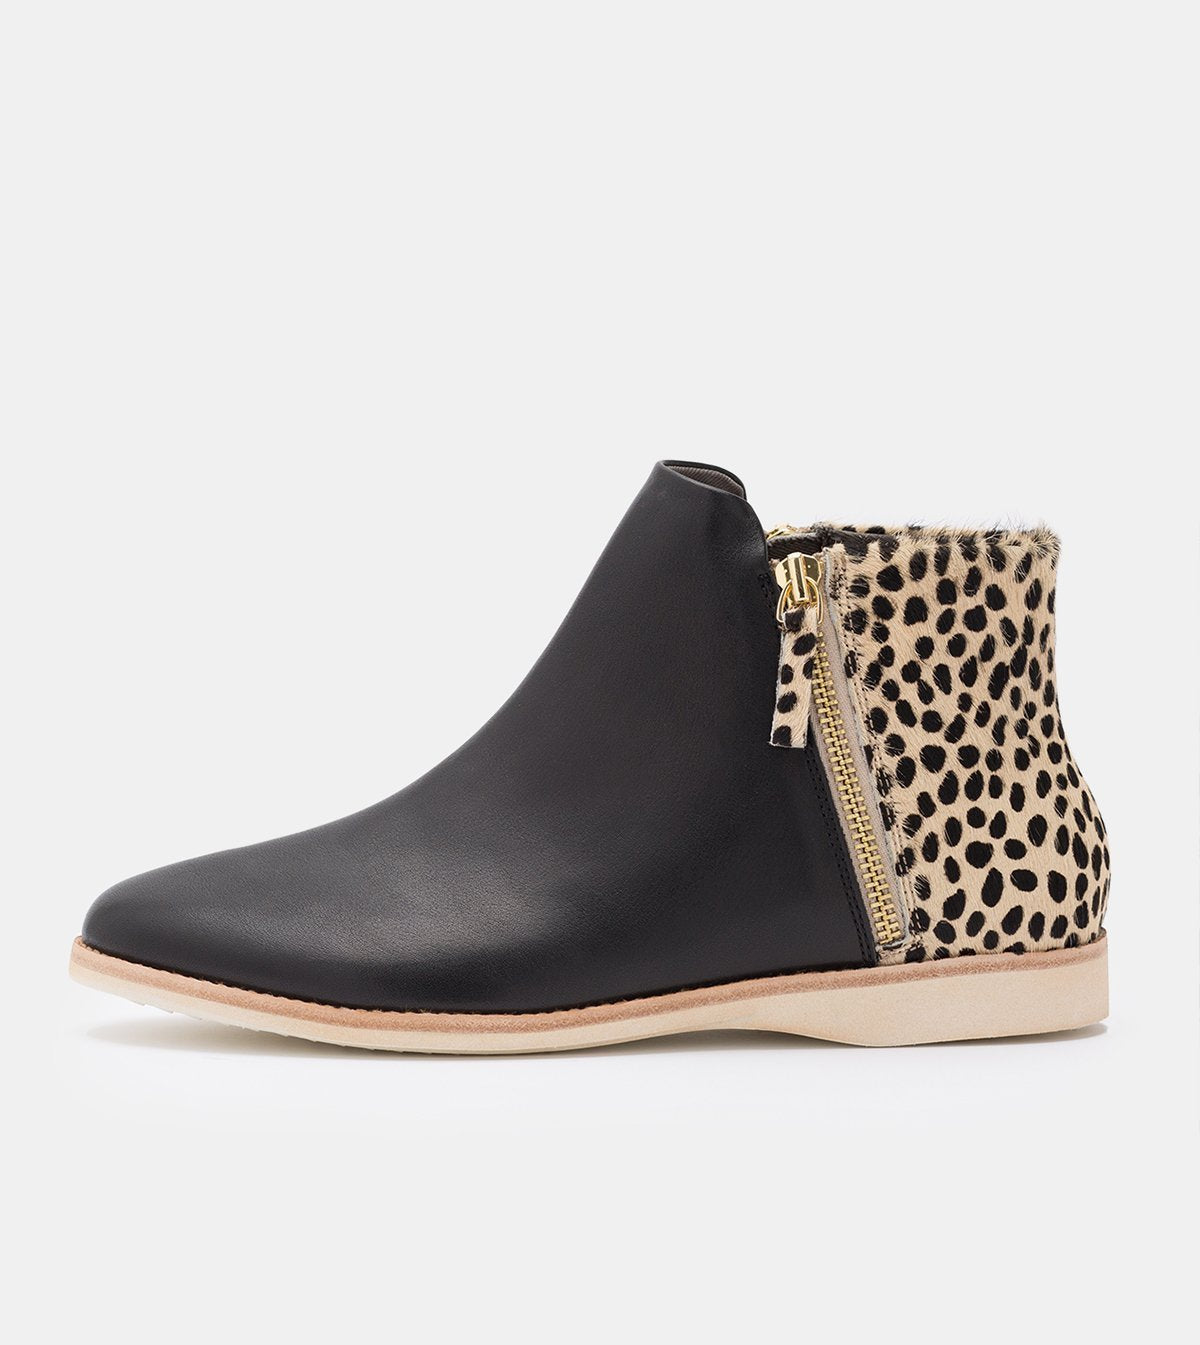 Rollie Side Zip Boot Black/Cheetah Shoes